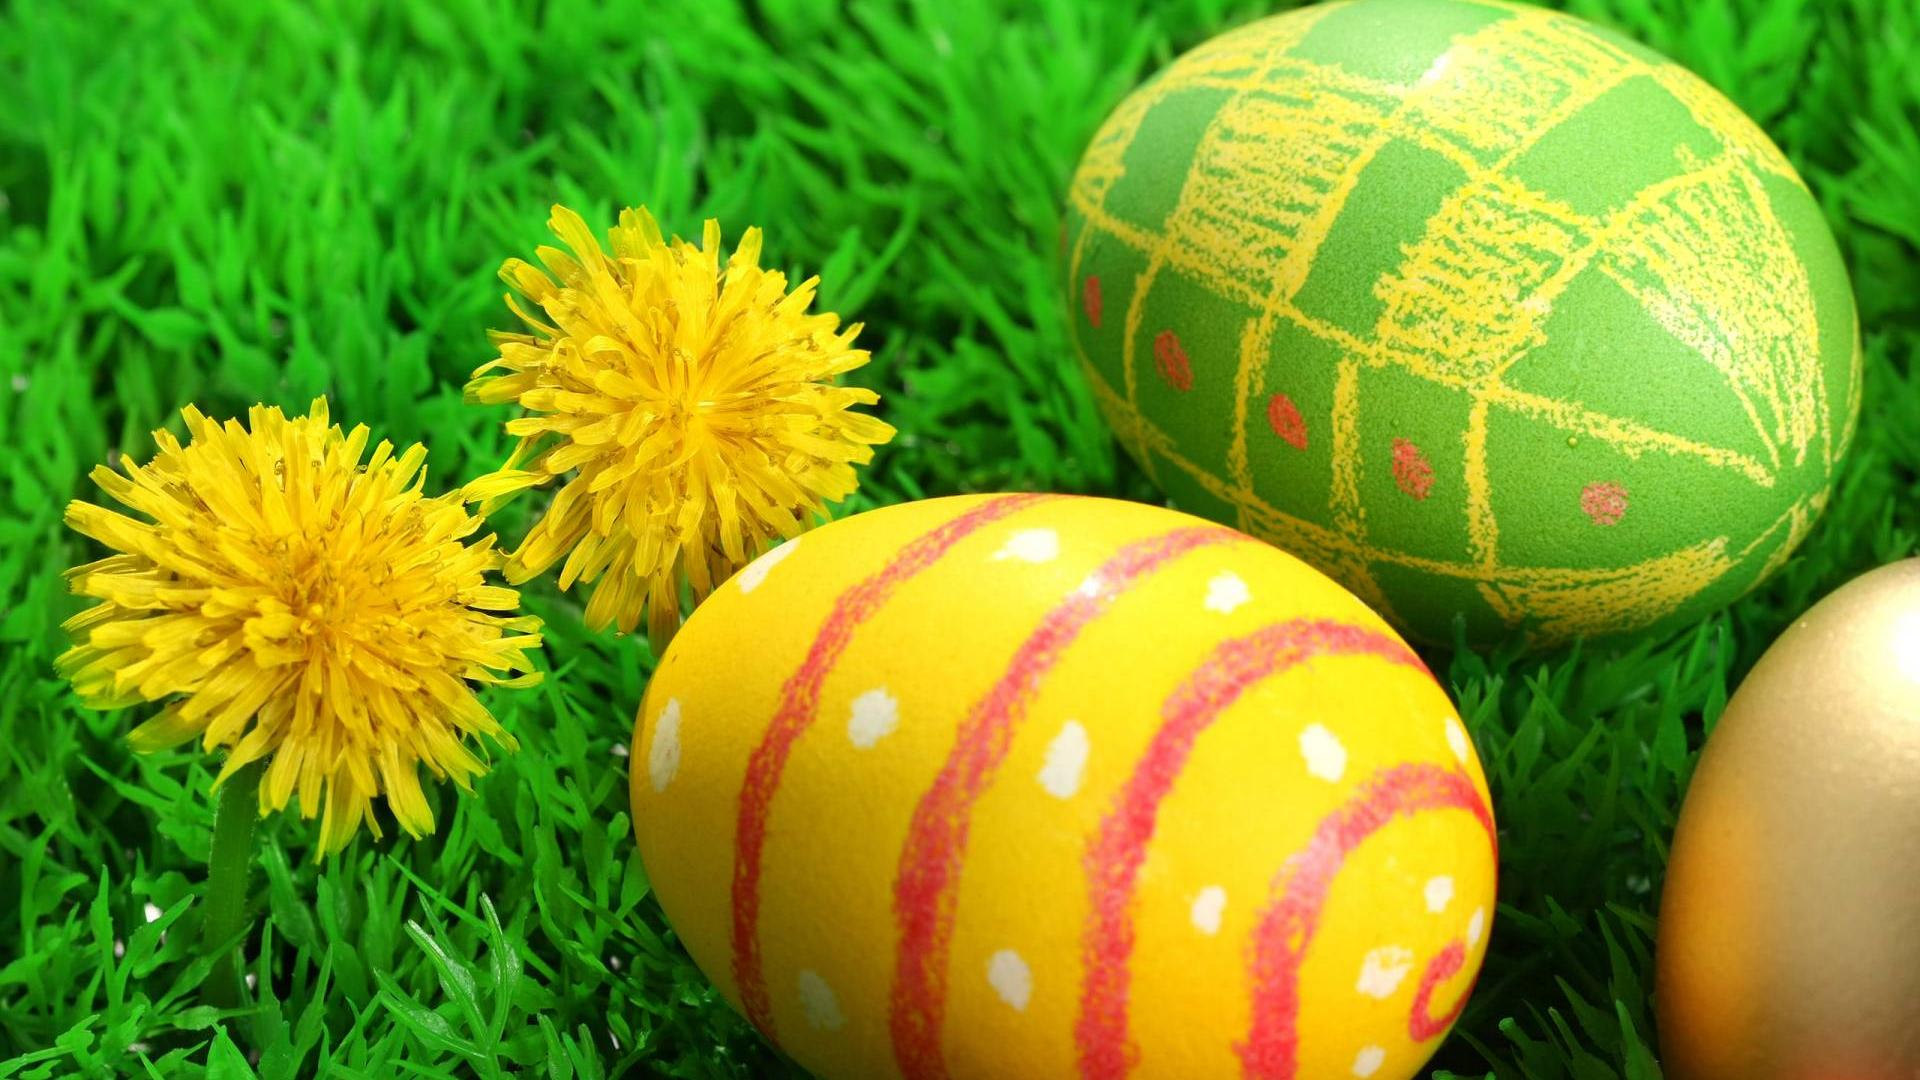 Easter Eggs 2013 HD Wallpaper of Greeting 1920x1080